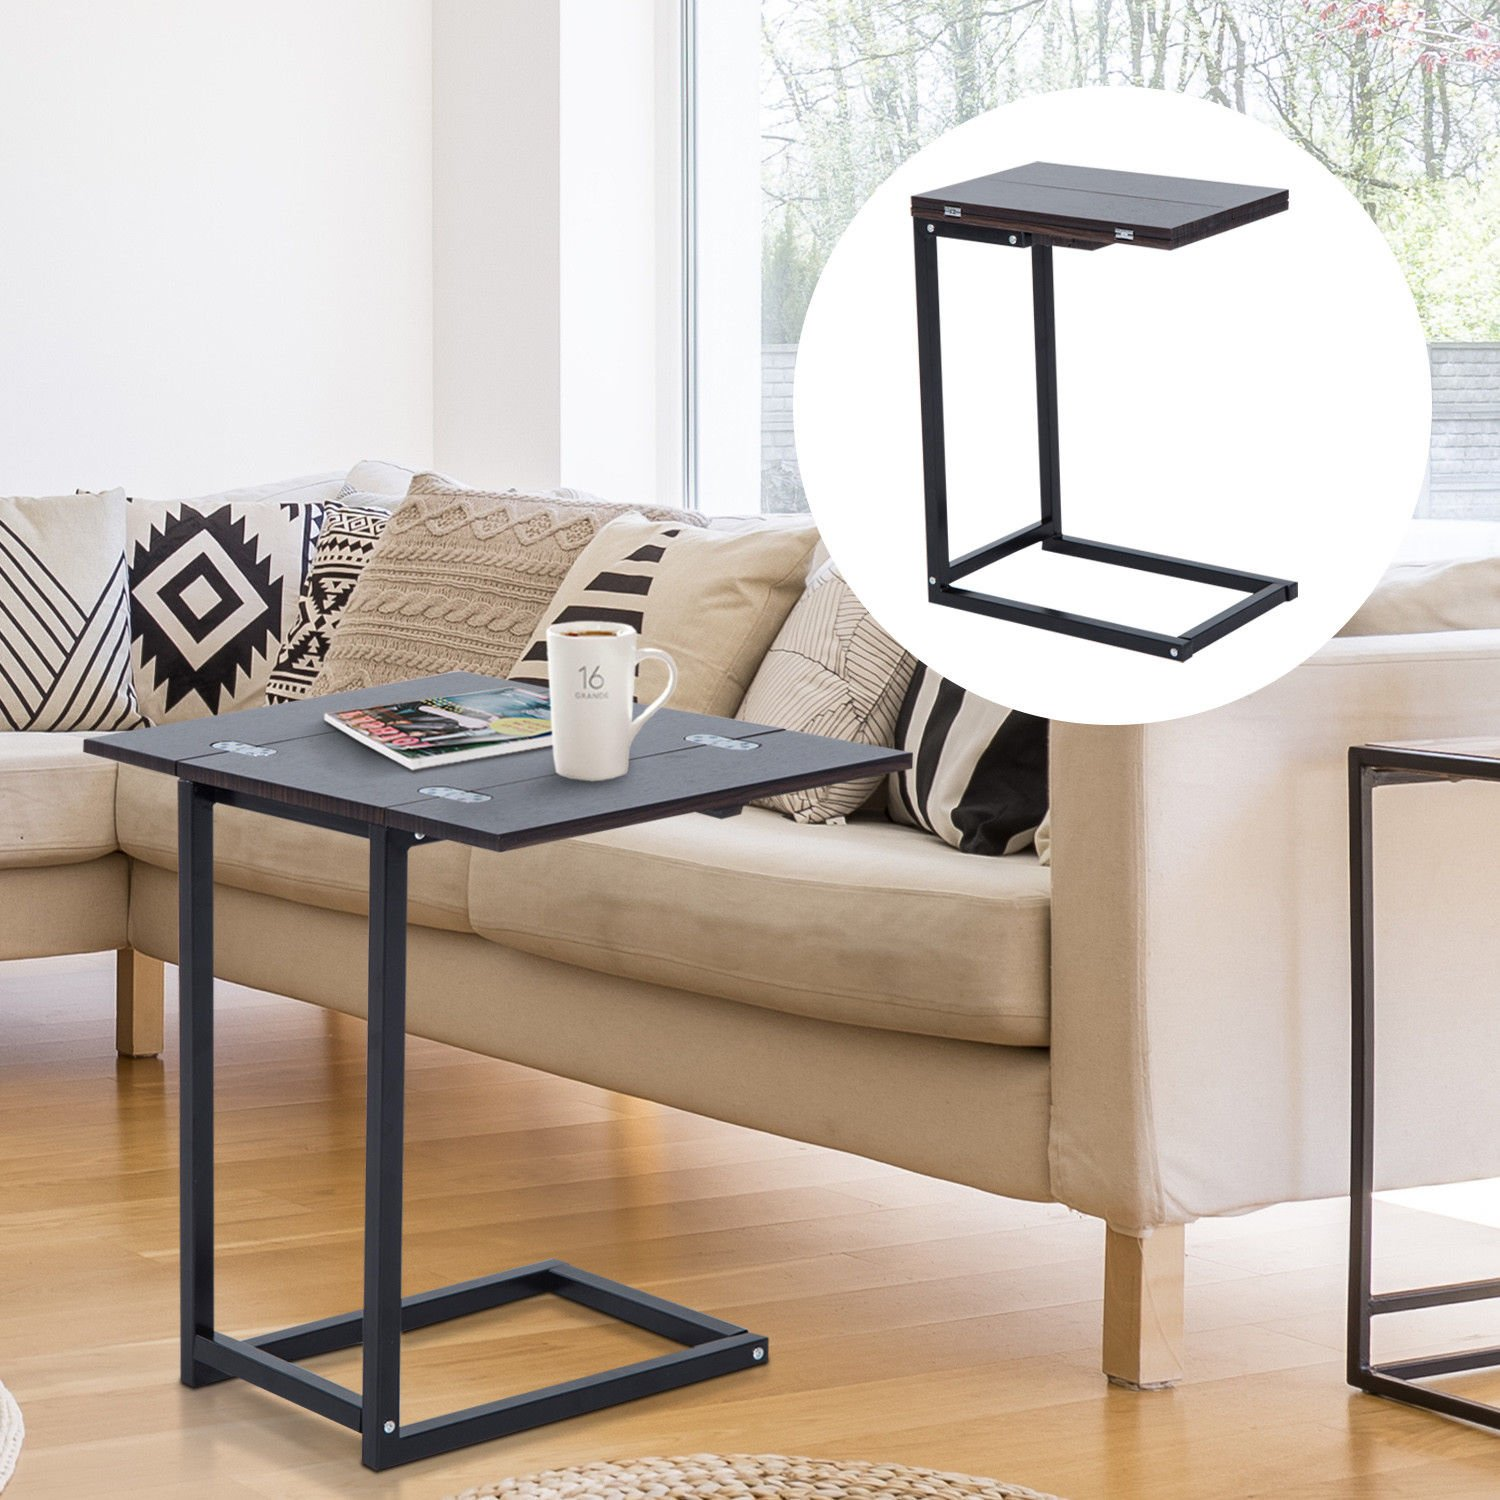 New MTN-G Expandable Side End Tray Table Folding Top Laptop Coffee Holder Modern Furniture by MTN Gearsmith